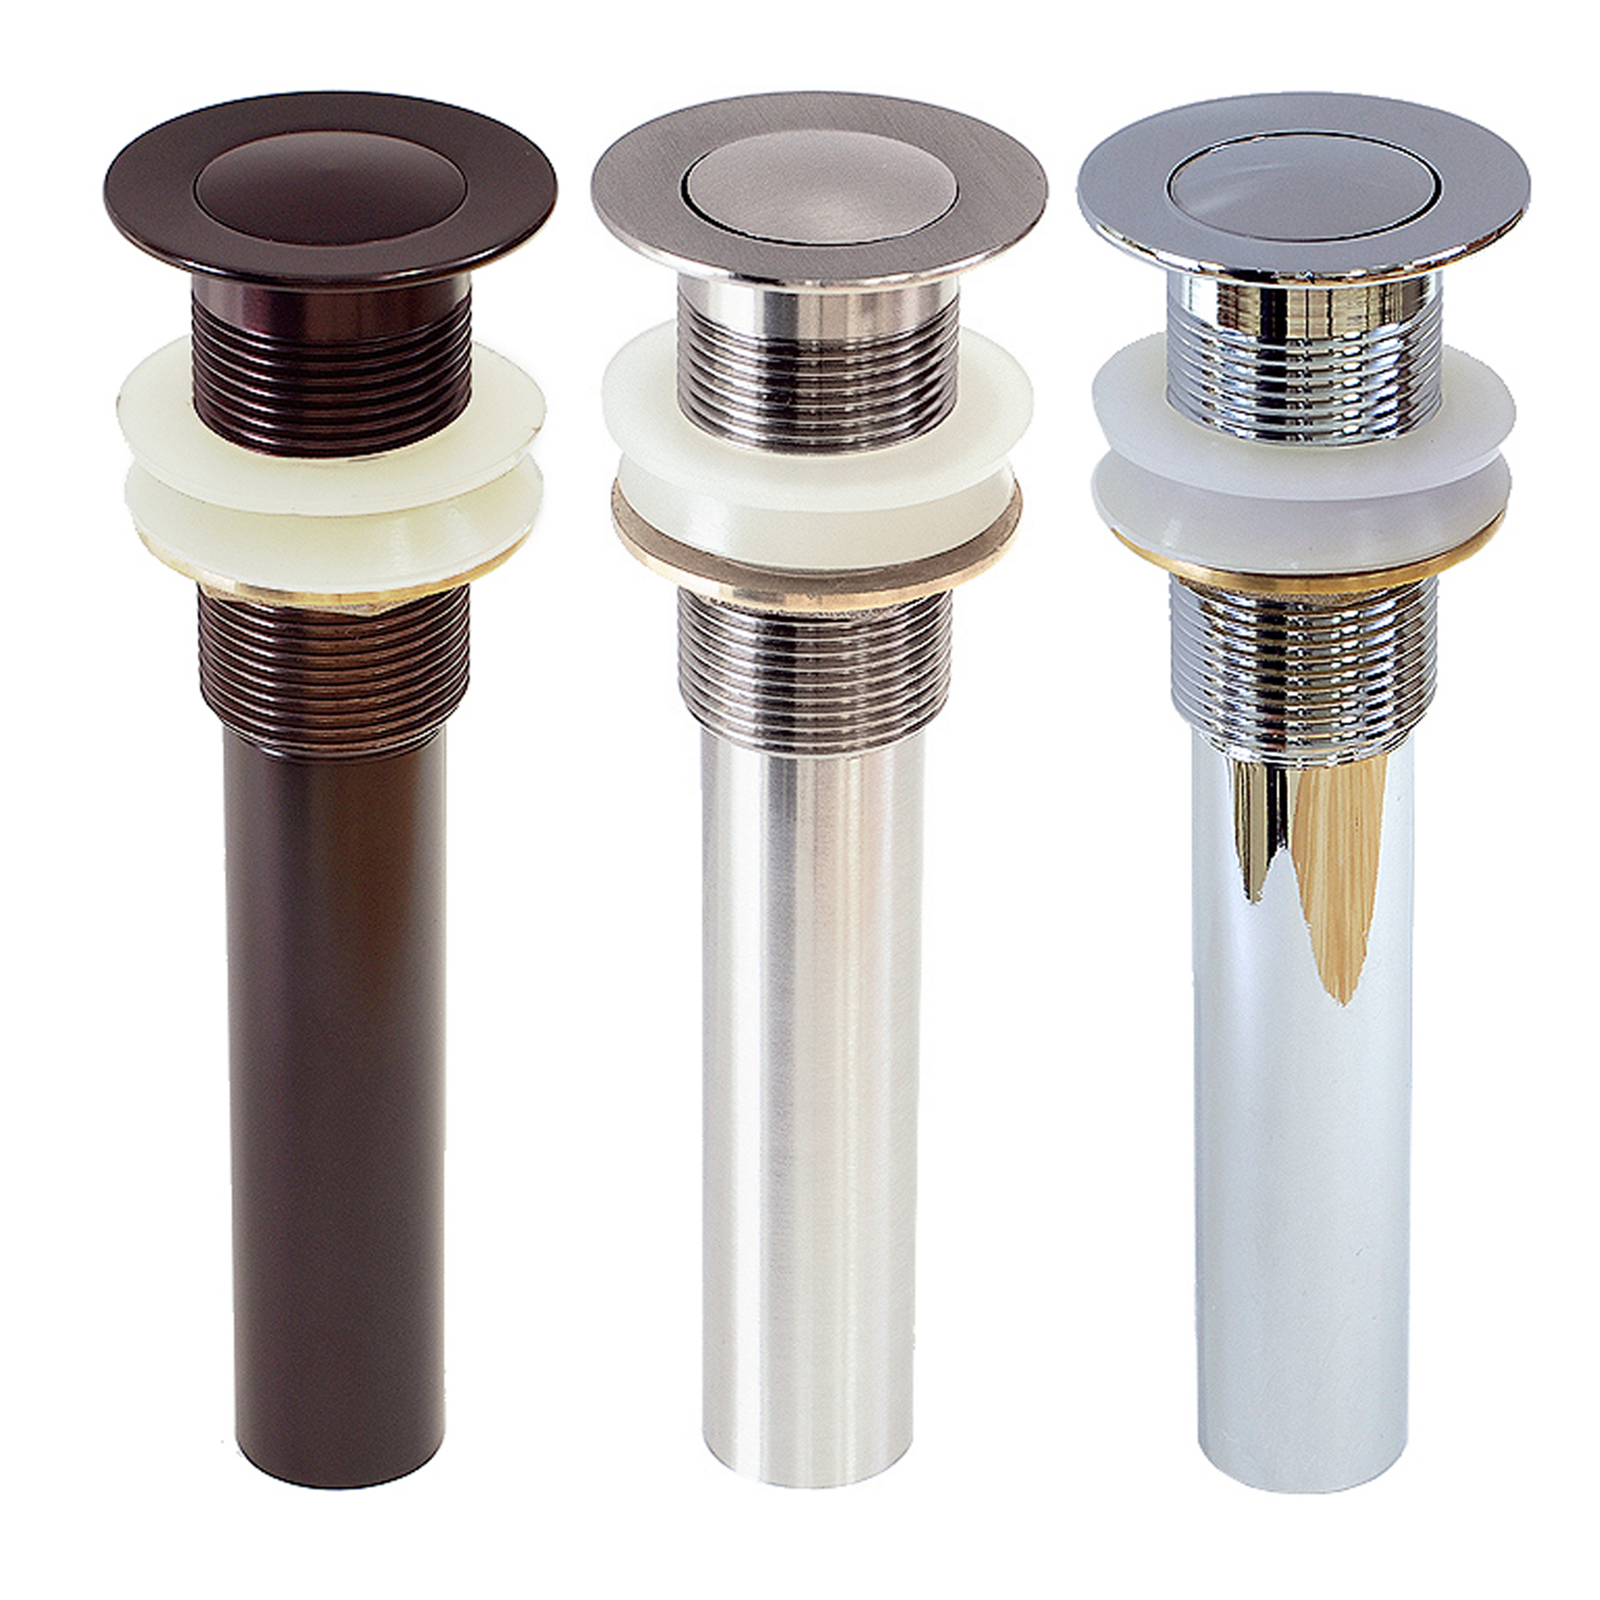 FREUER Faucets Pop Up Non-Overflow Bathroom Vessel Sink Drain - Multiple Finishes Available